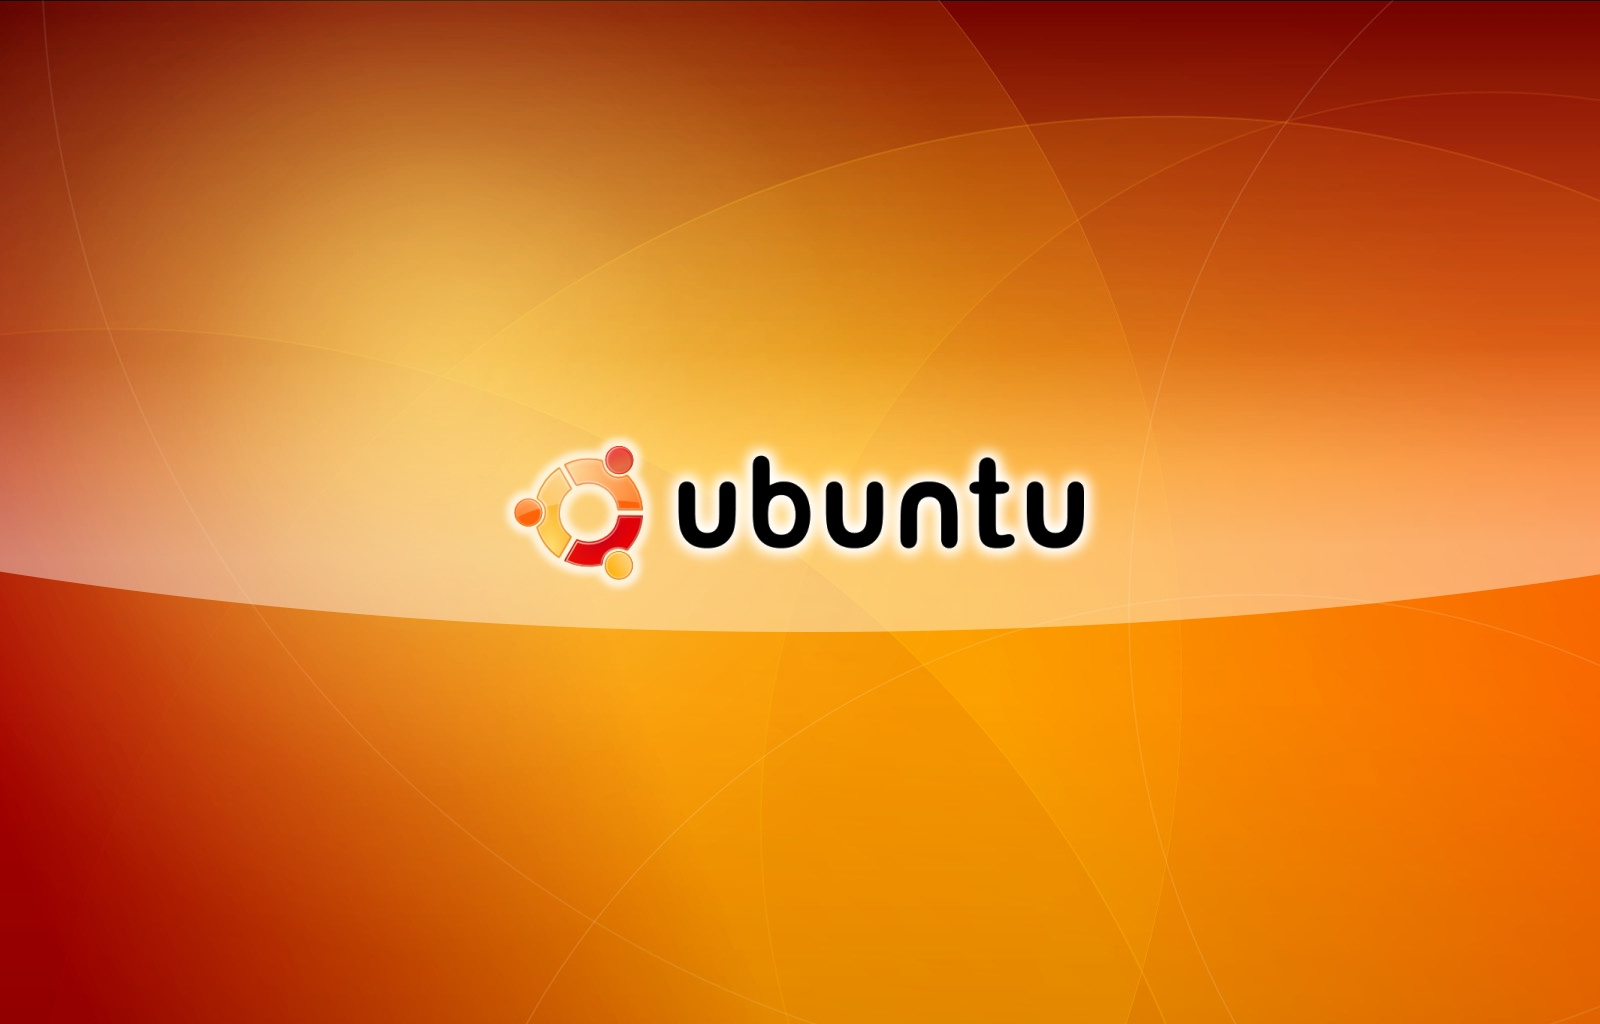 UbuntuLinux Awesome Wallpapers 1600x1024